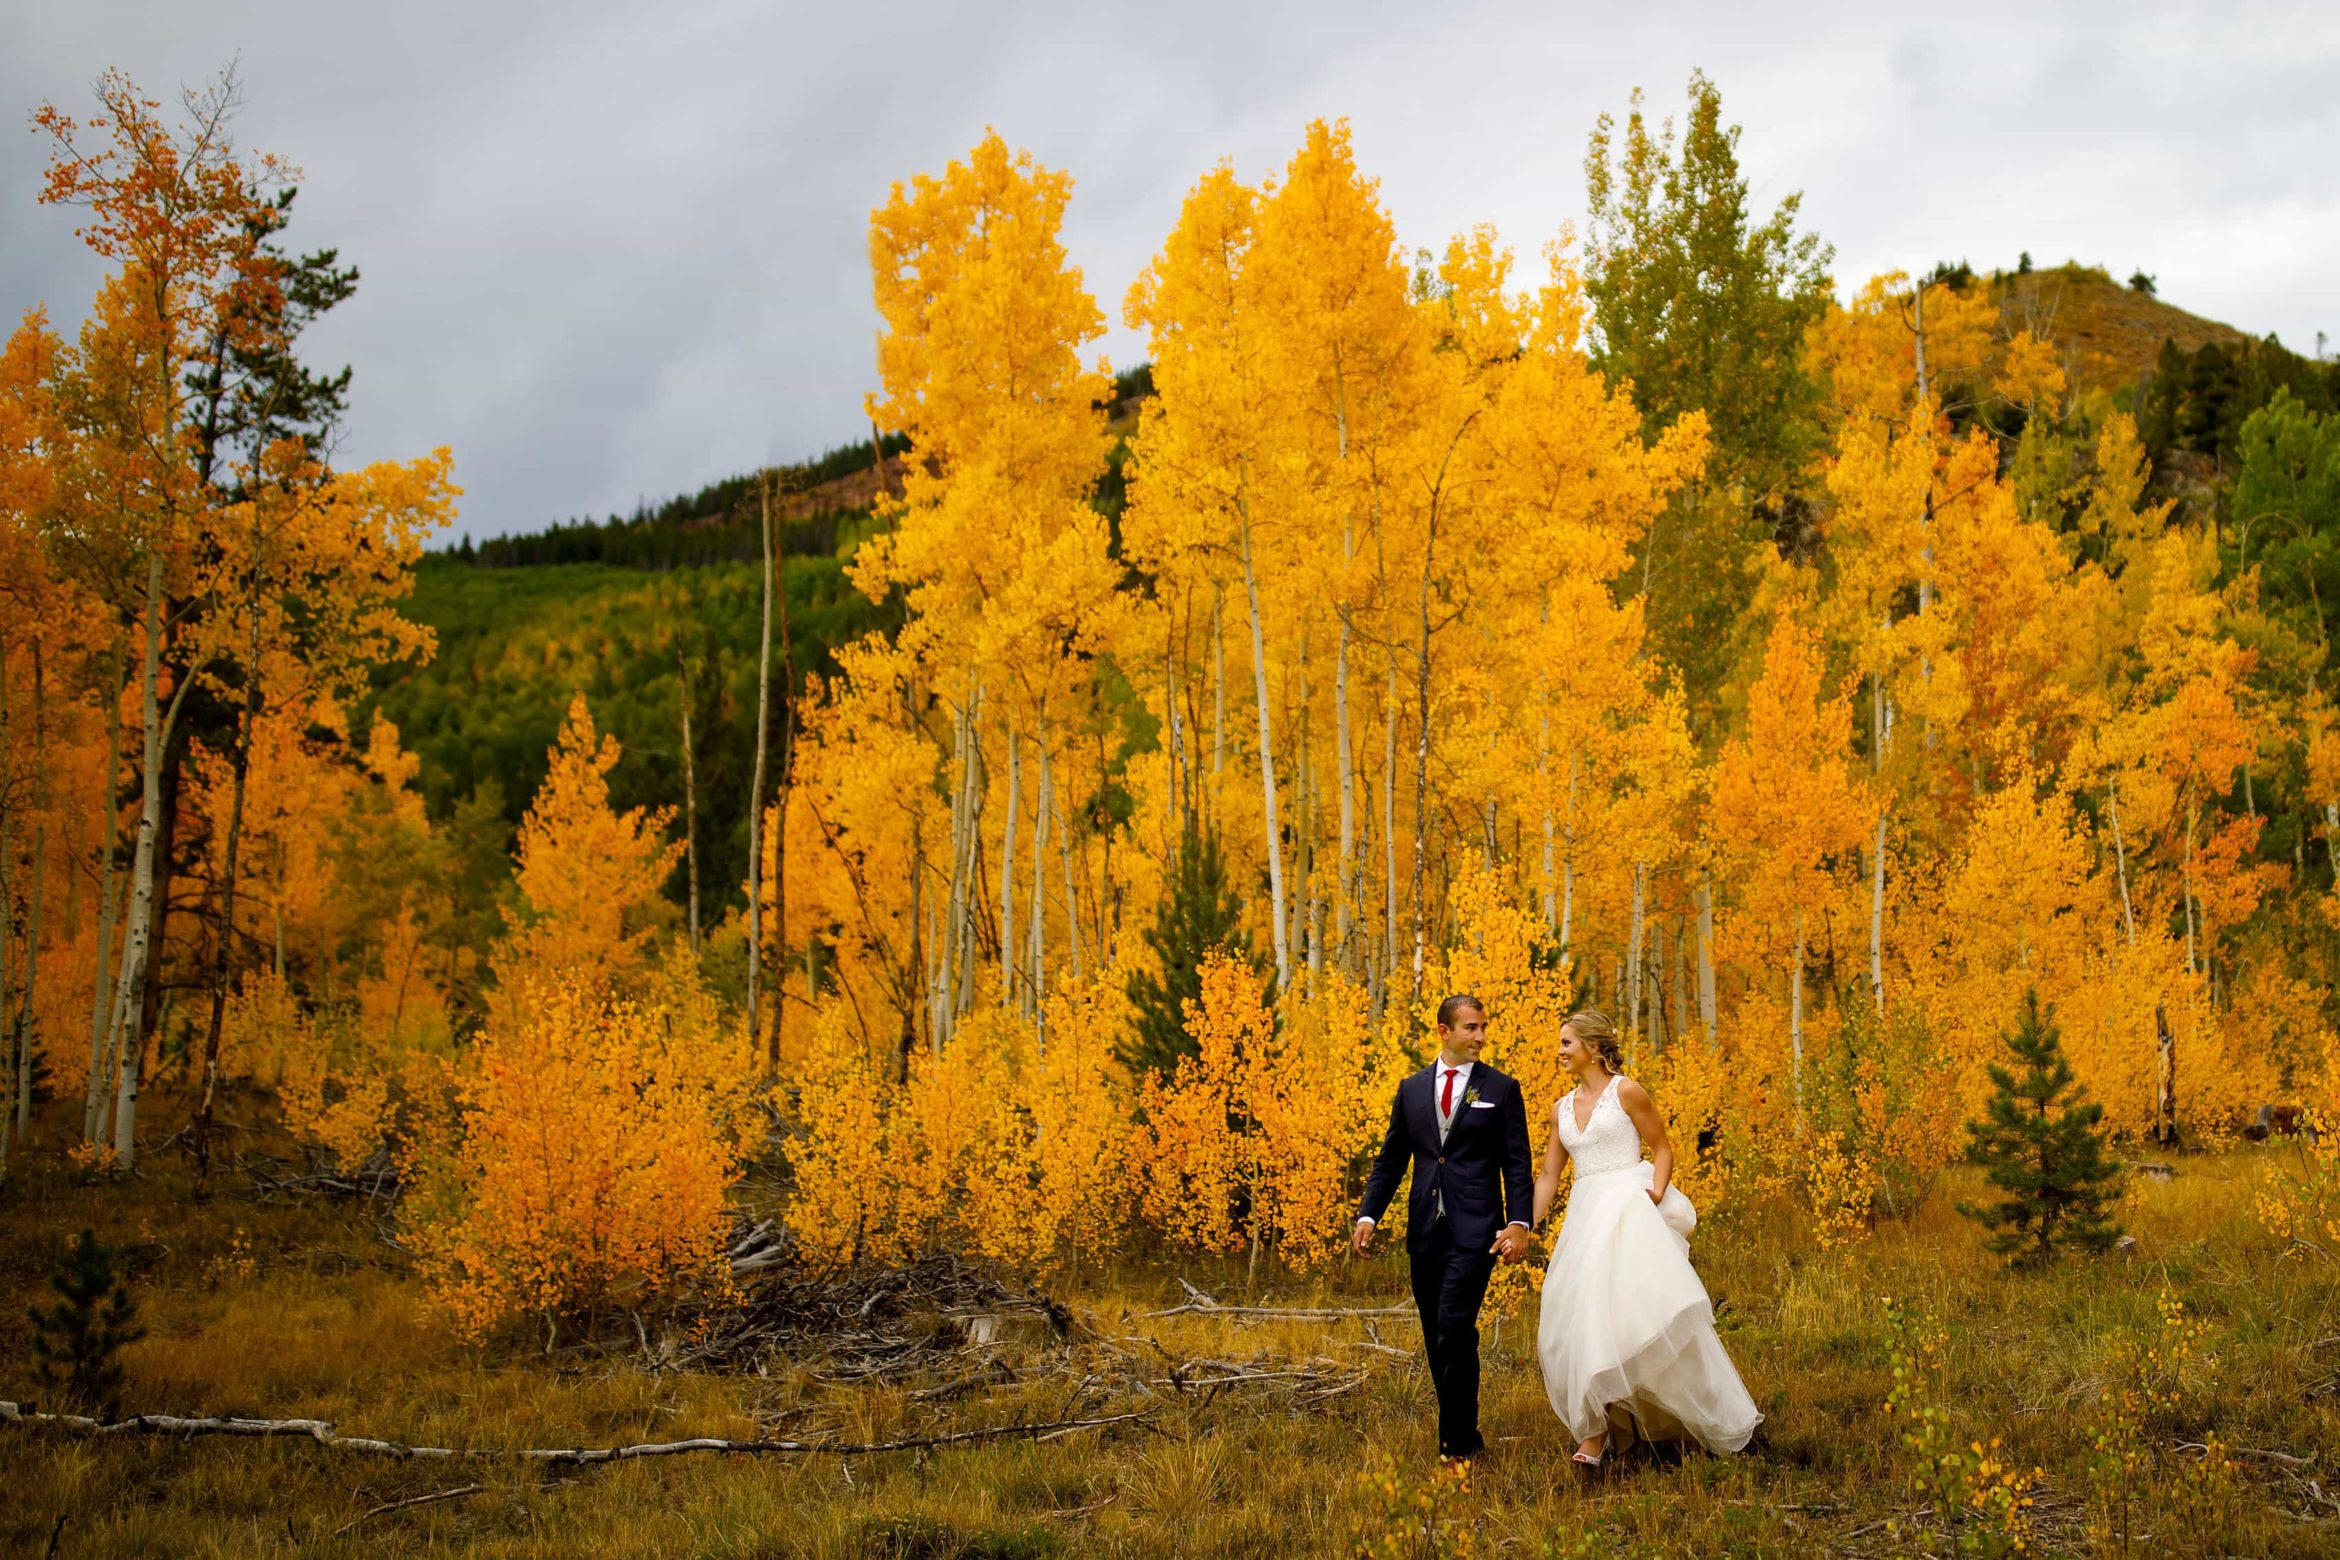 Newlyweds walk together near a grove of aspen trees during their fall colors wedding at Camp Hale